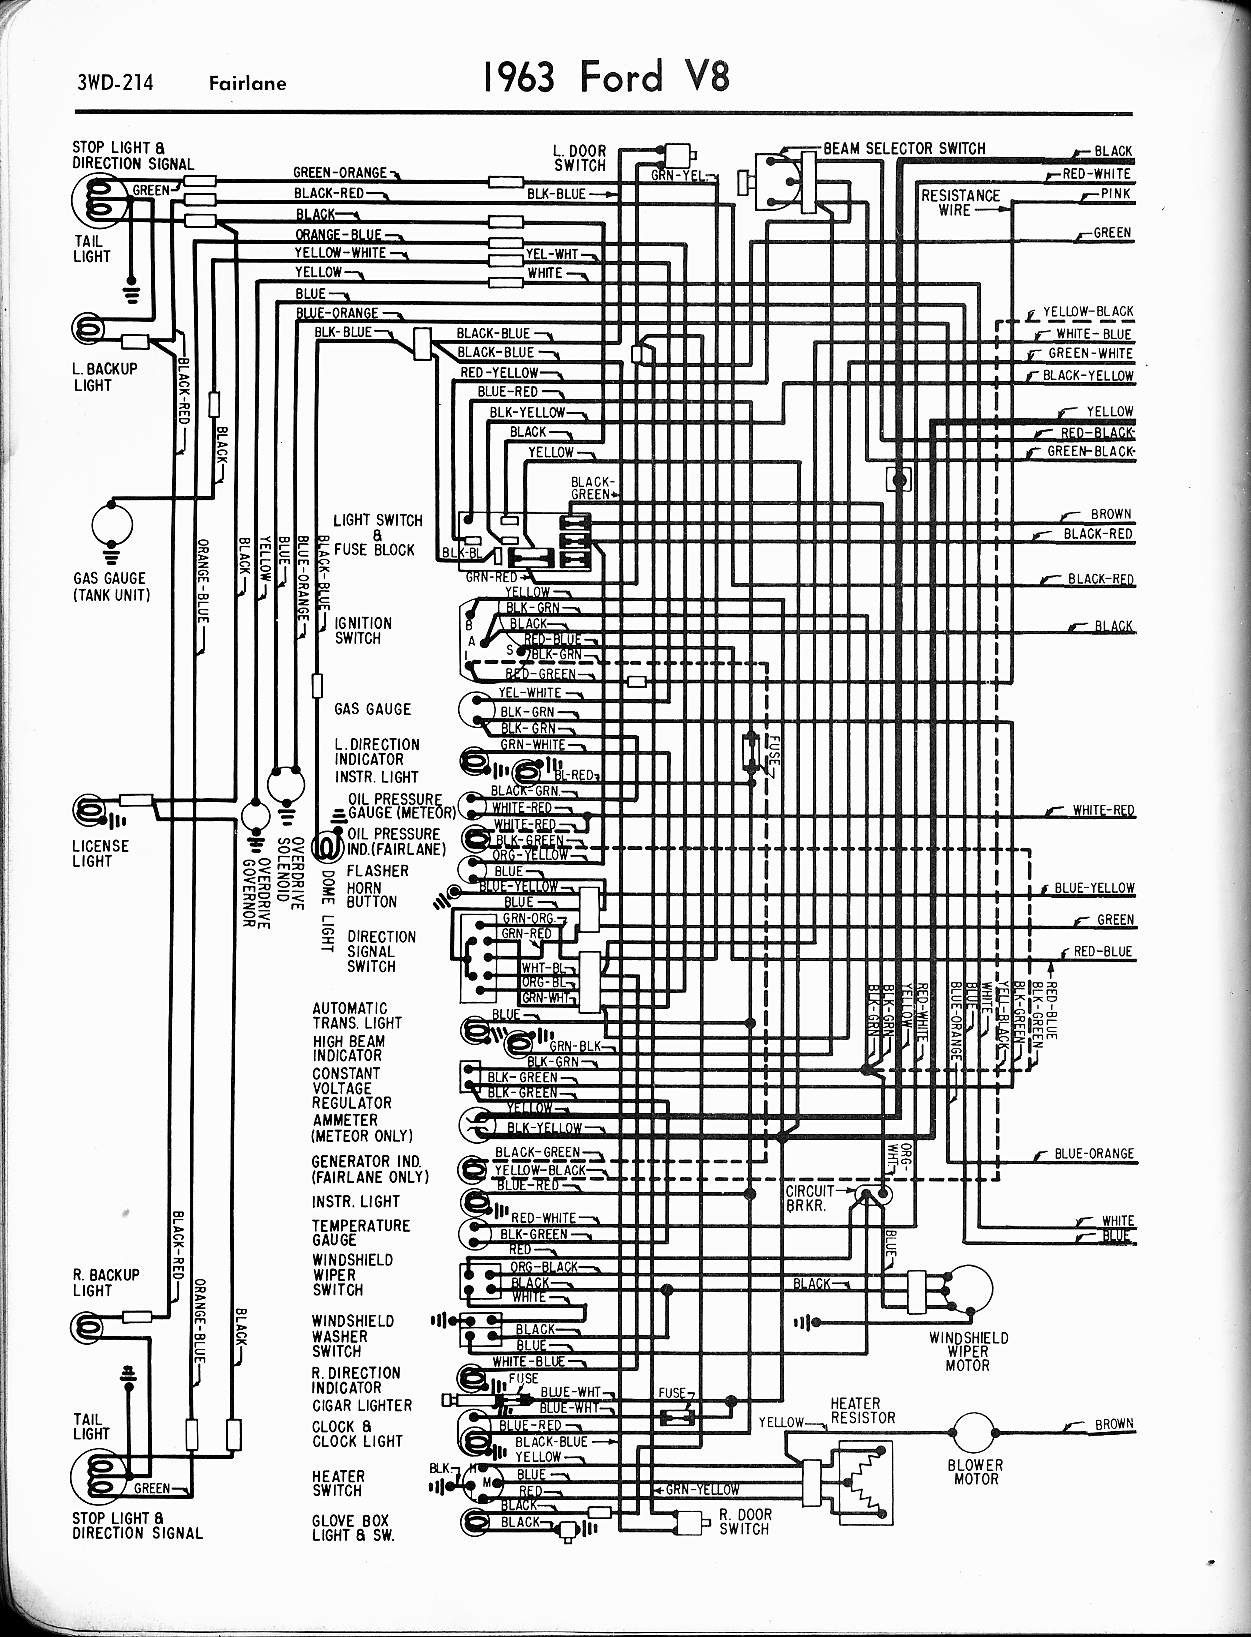 57 65 ford wiring diagrams 1973 ford f100 turn signal wiring diagram ford steering column wiring diagram of